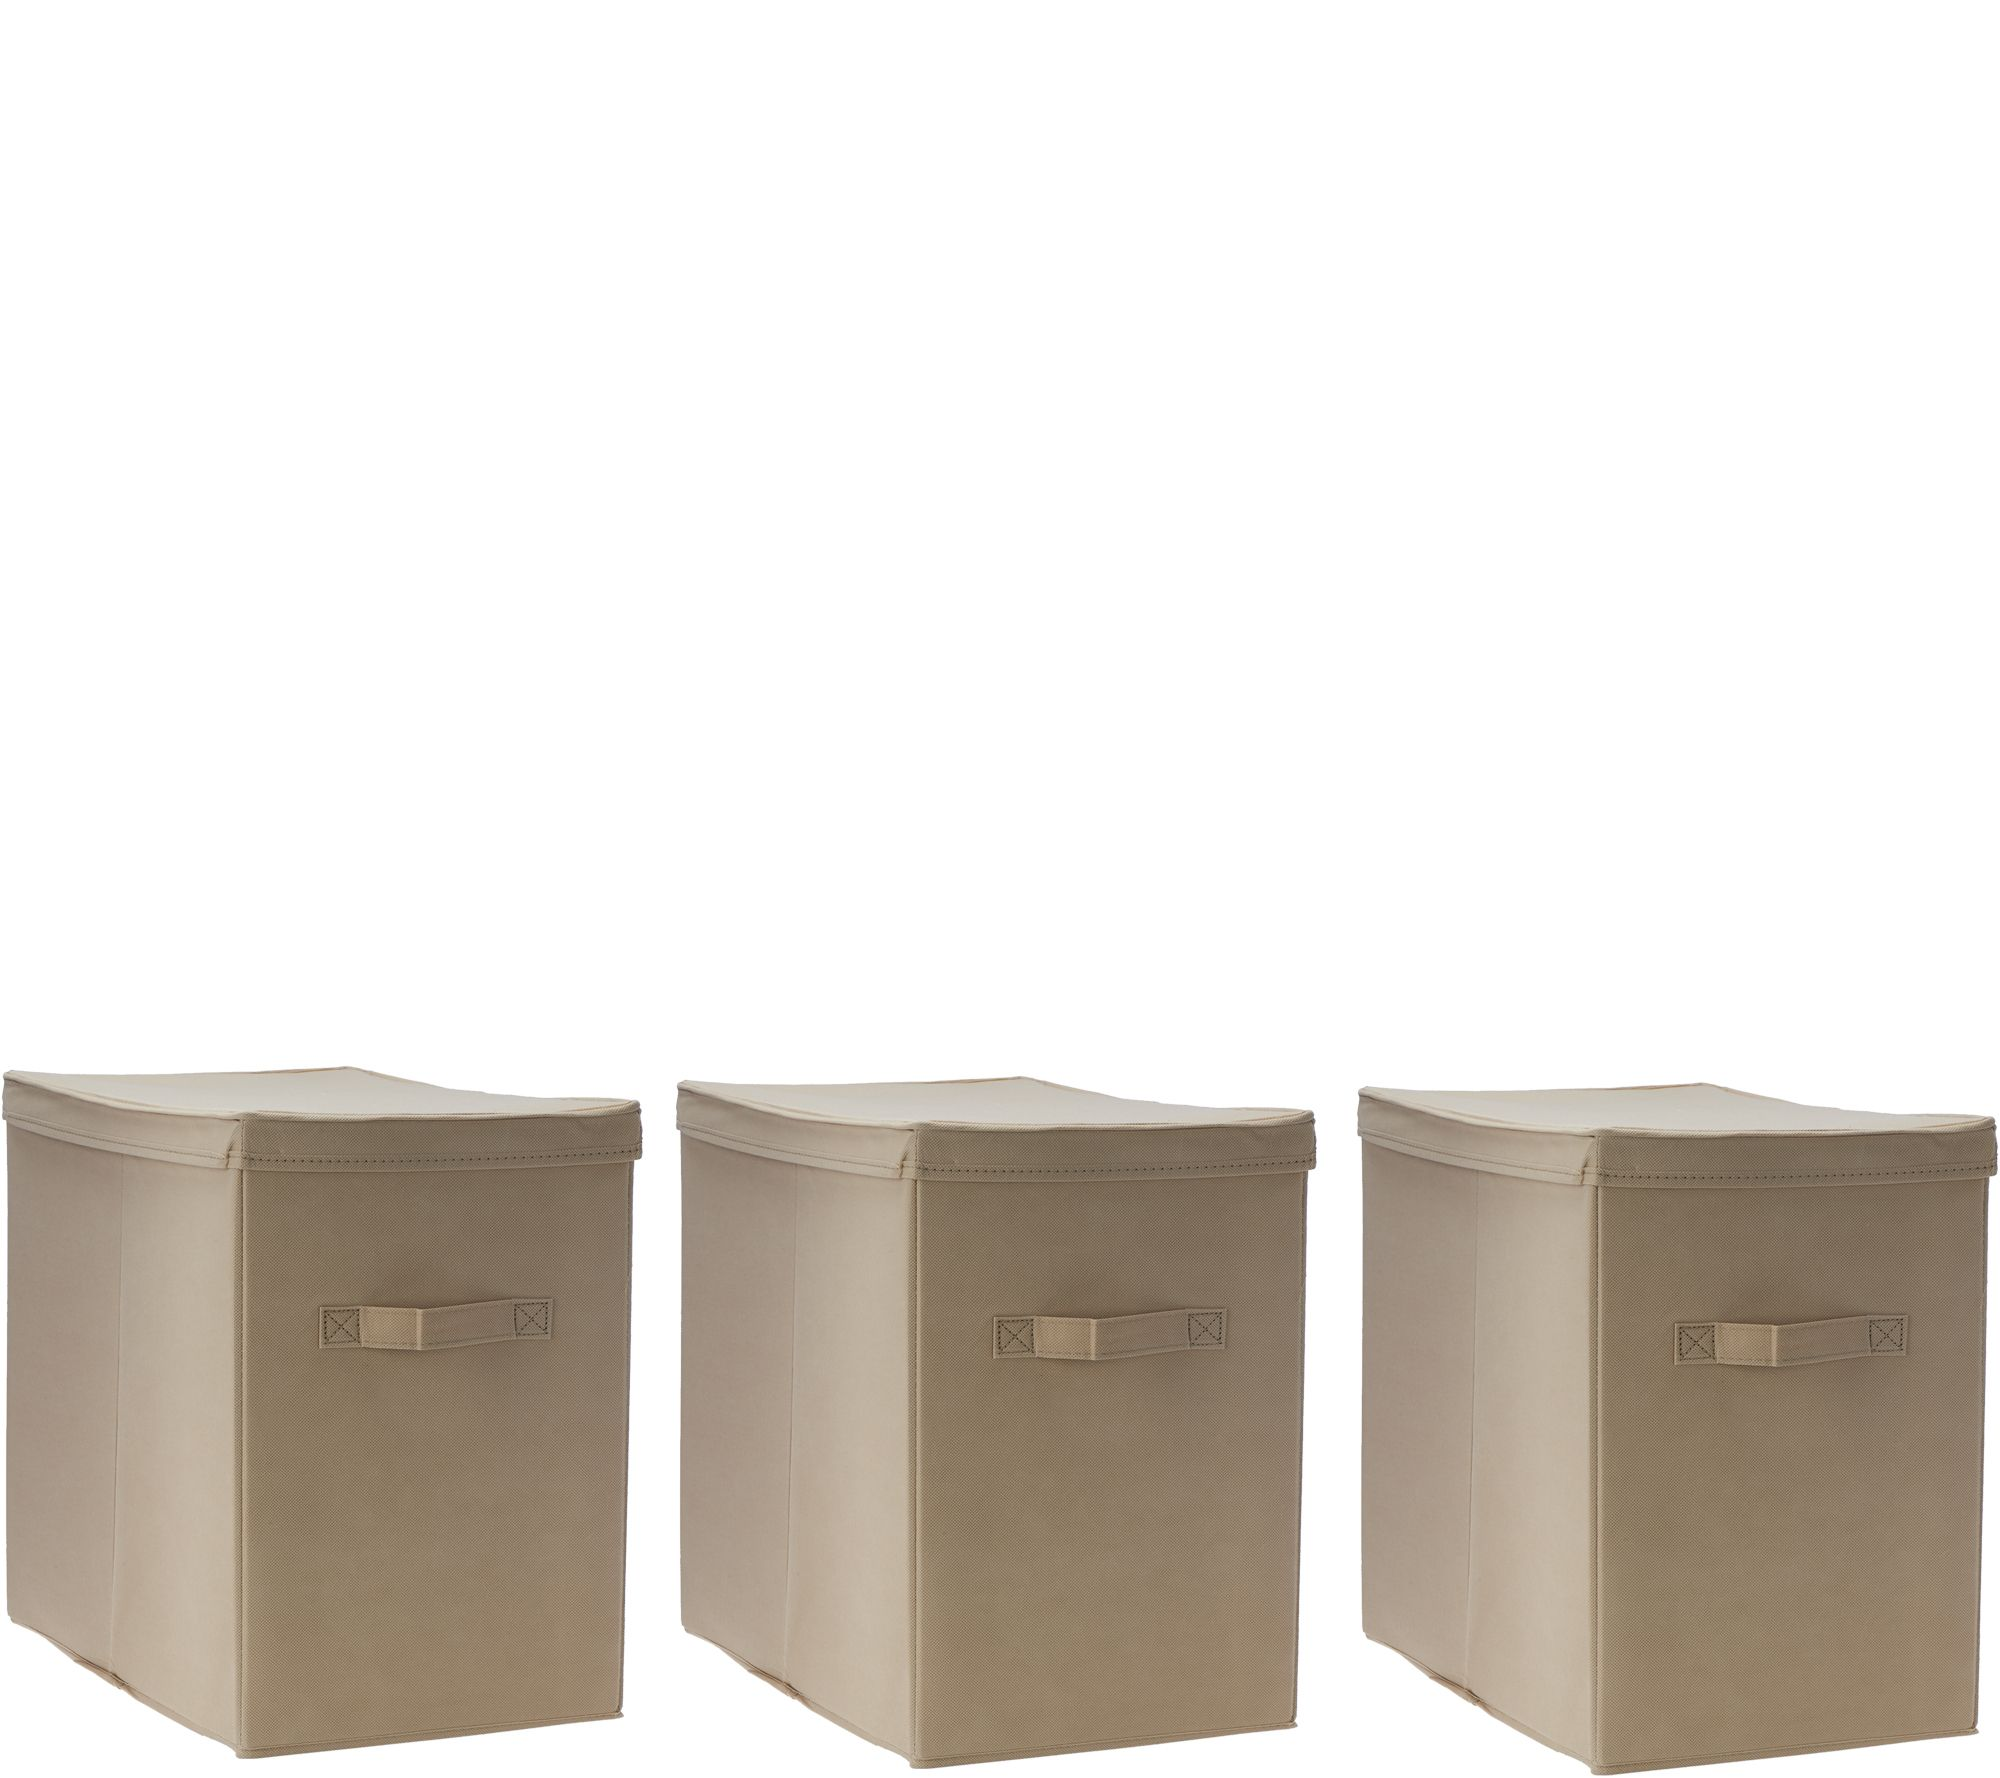 Pop It Set Of 3 Collapsible Storage Bins With Lids   Page 1 U2014 QVC.com